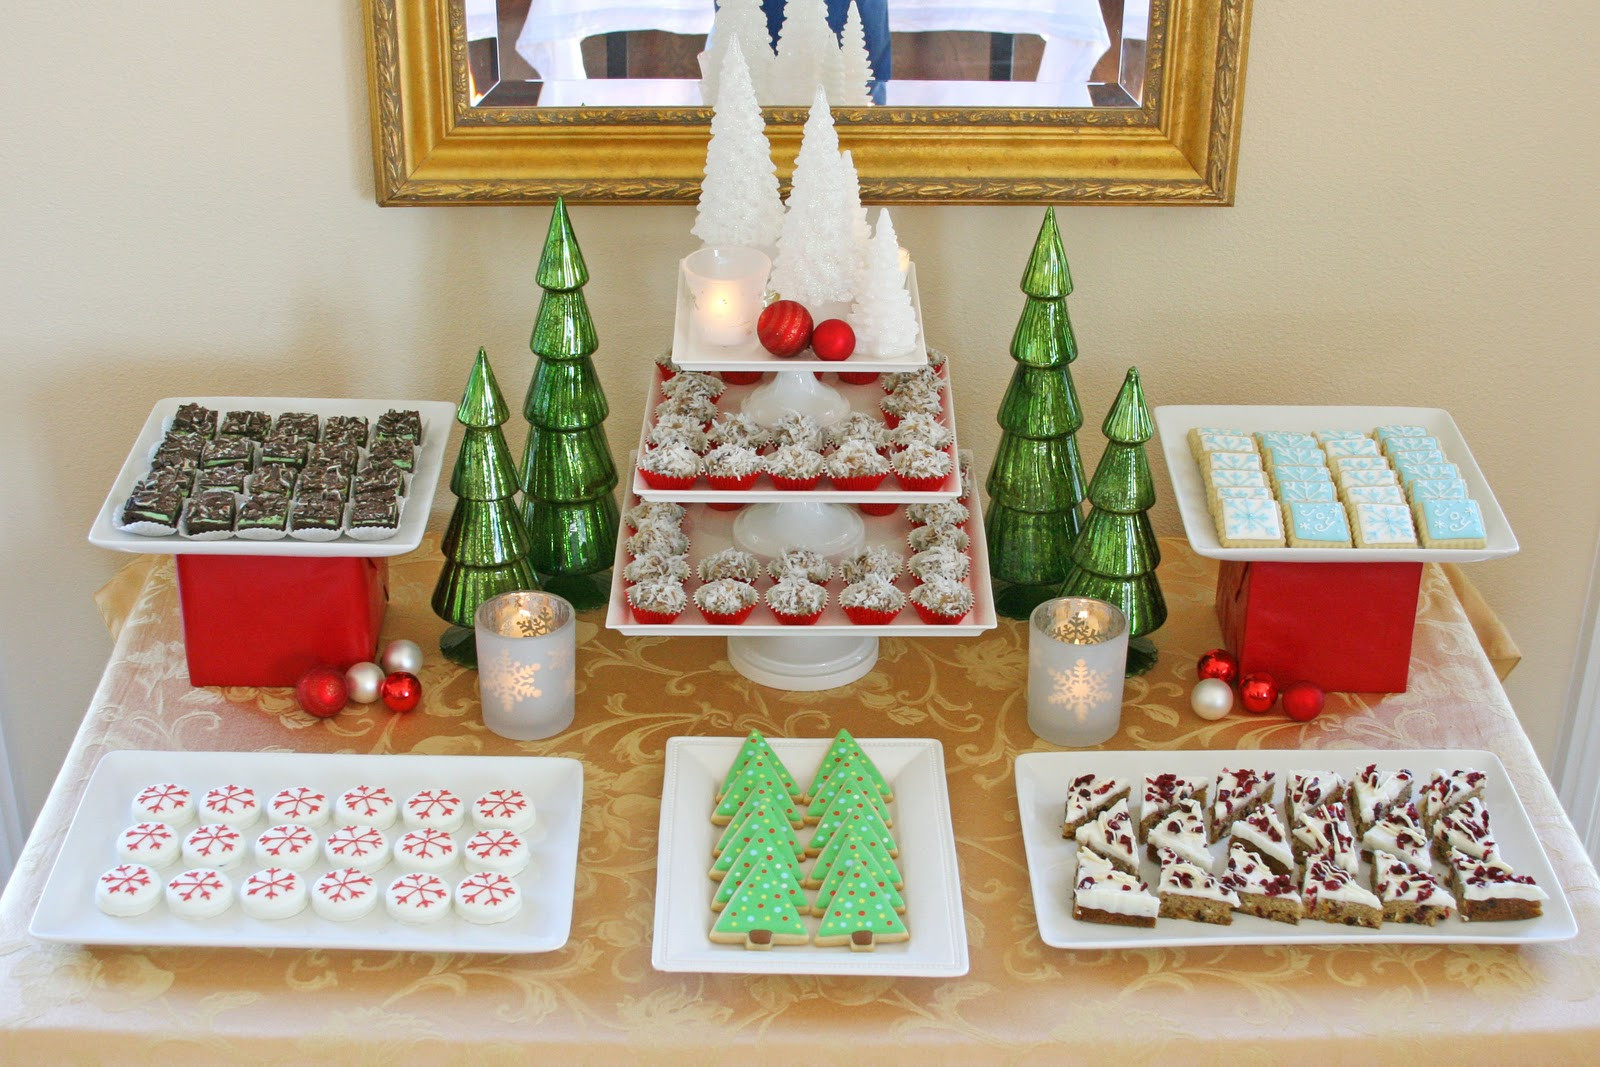 Christmas Dessert Ideas For Party  Classic Holiday Dessert Table Glorious Treats